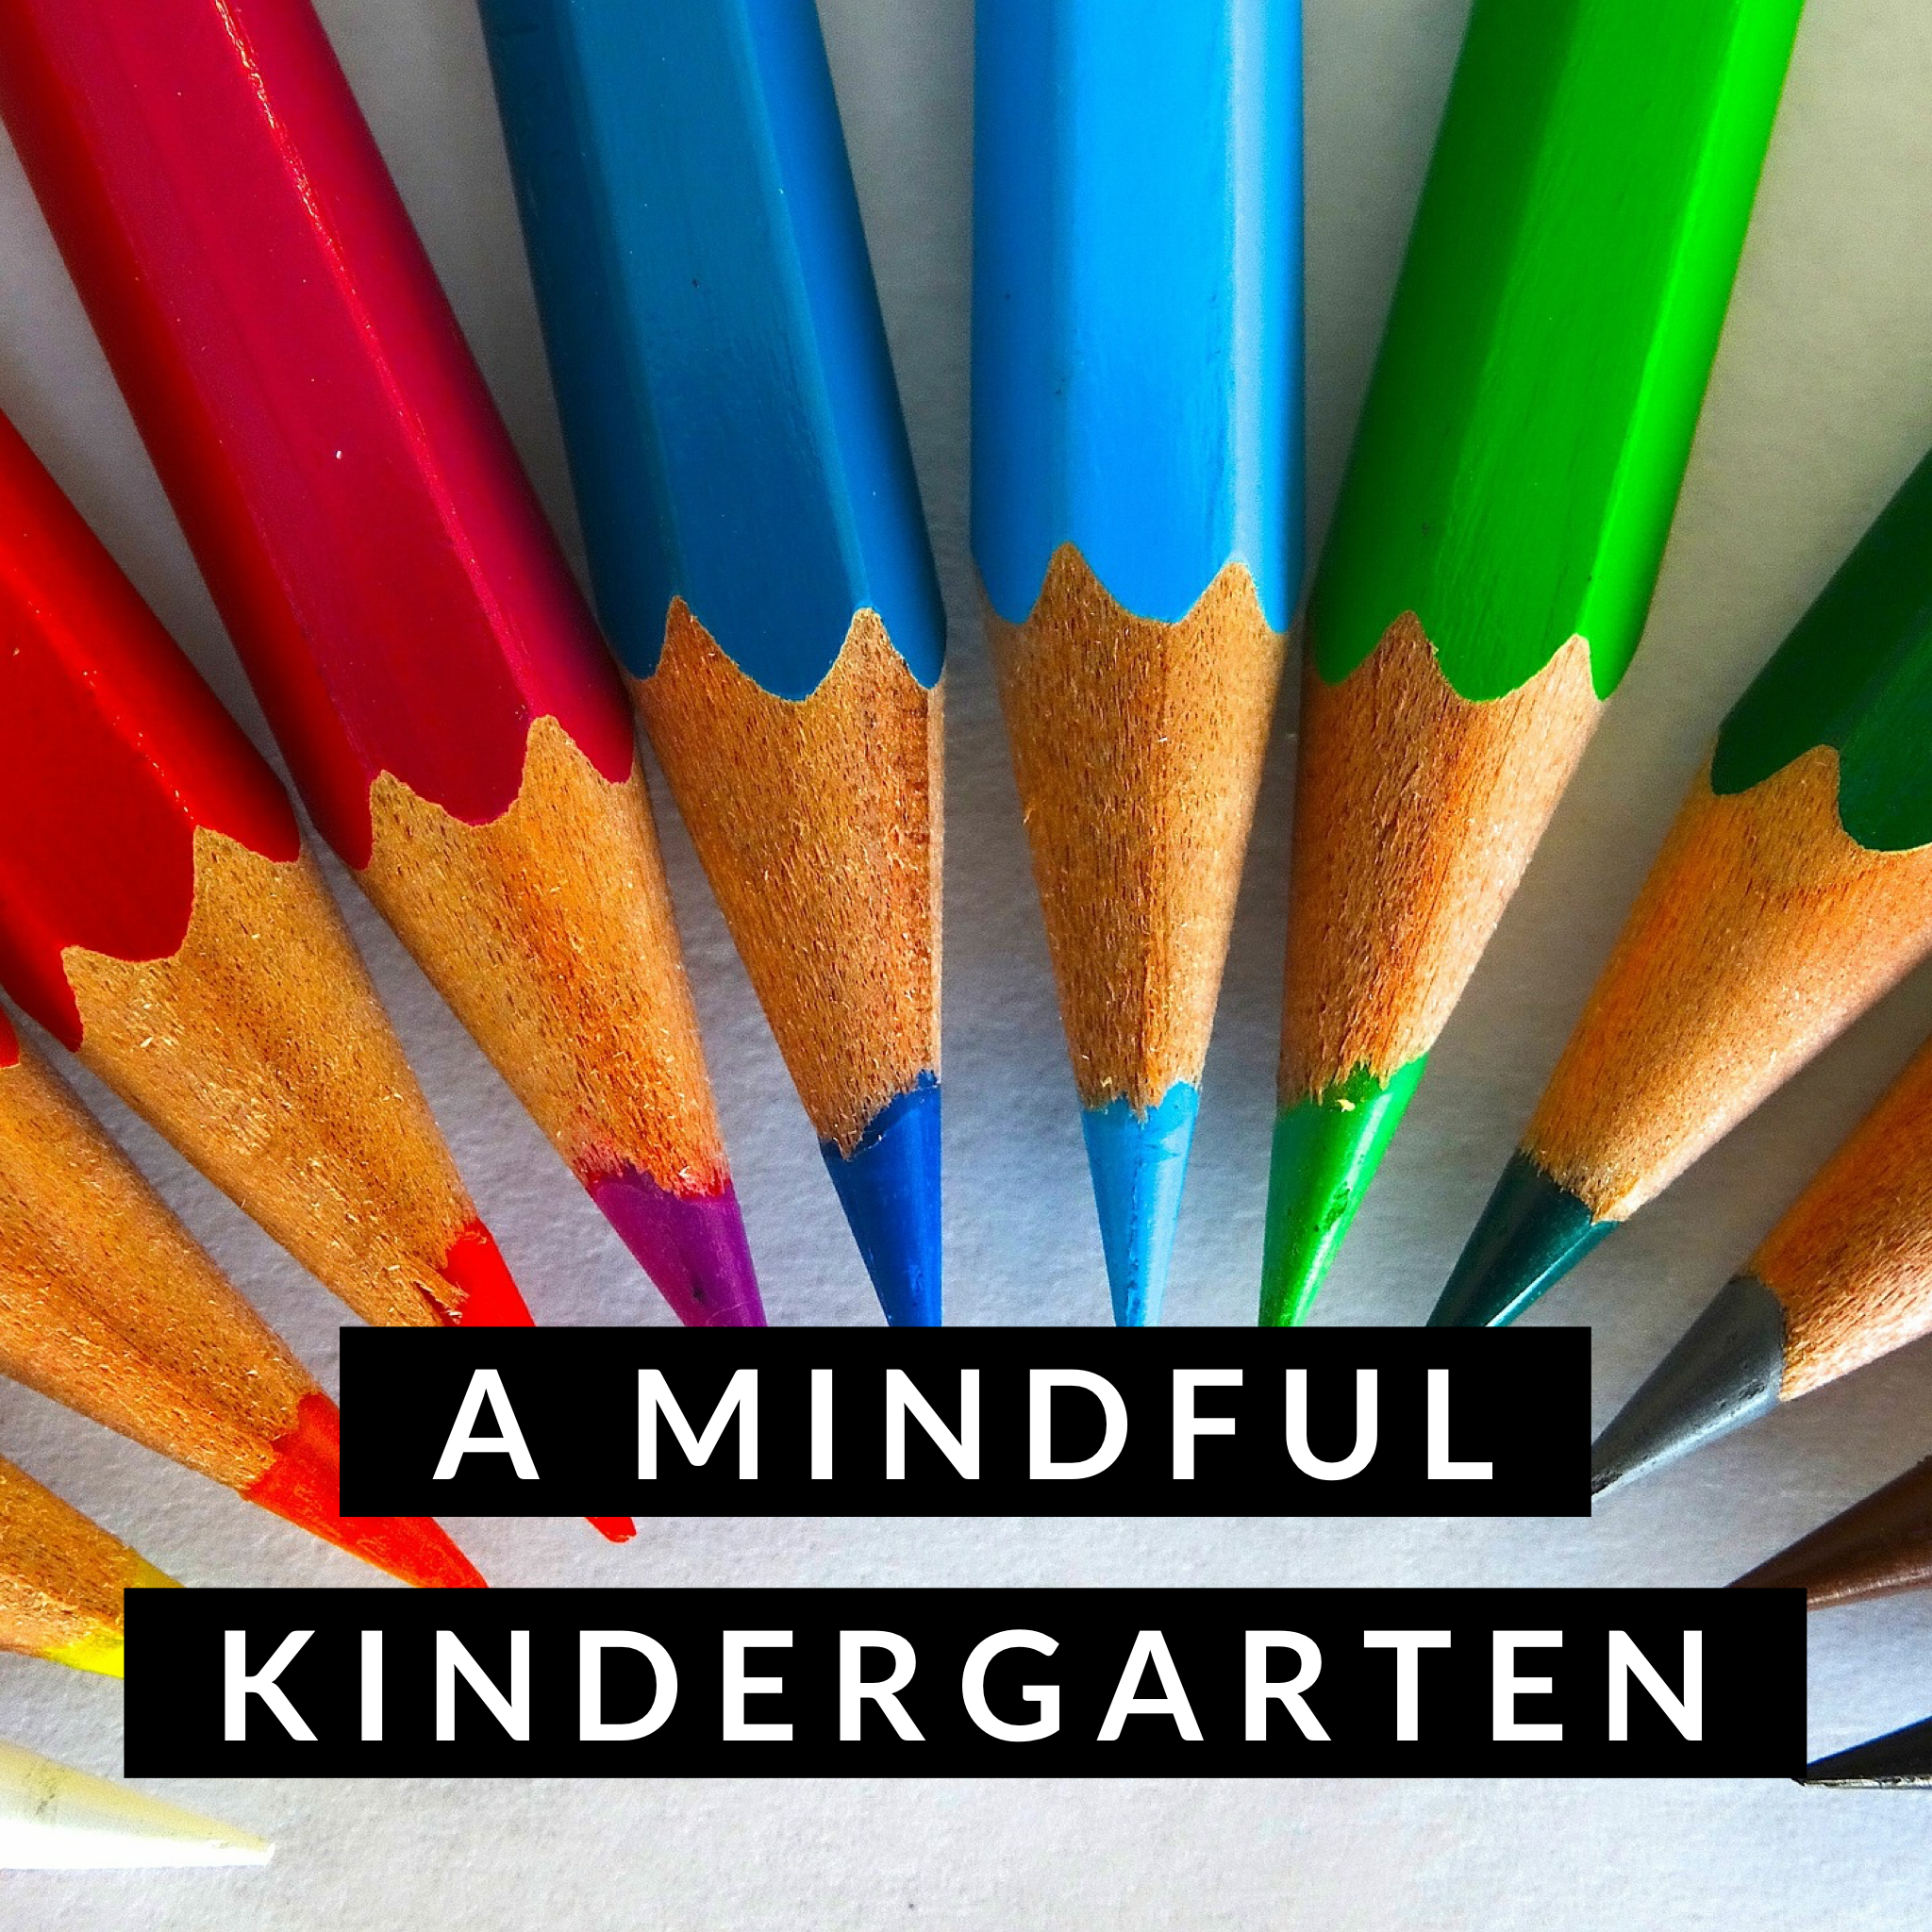 Daily Mindfulness For Kindergarten